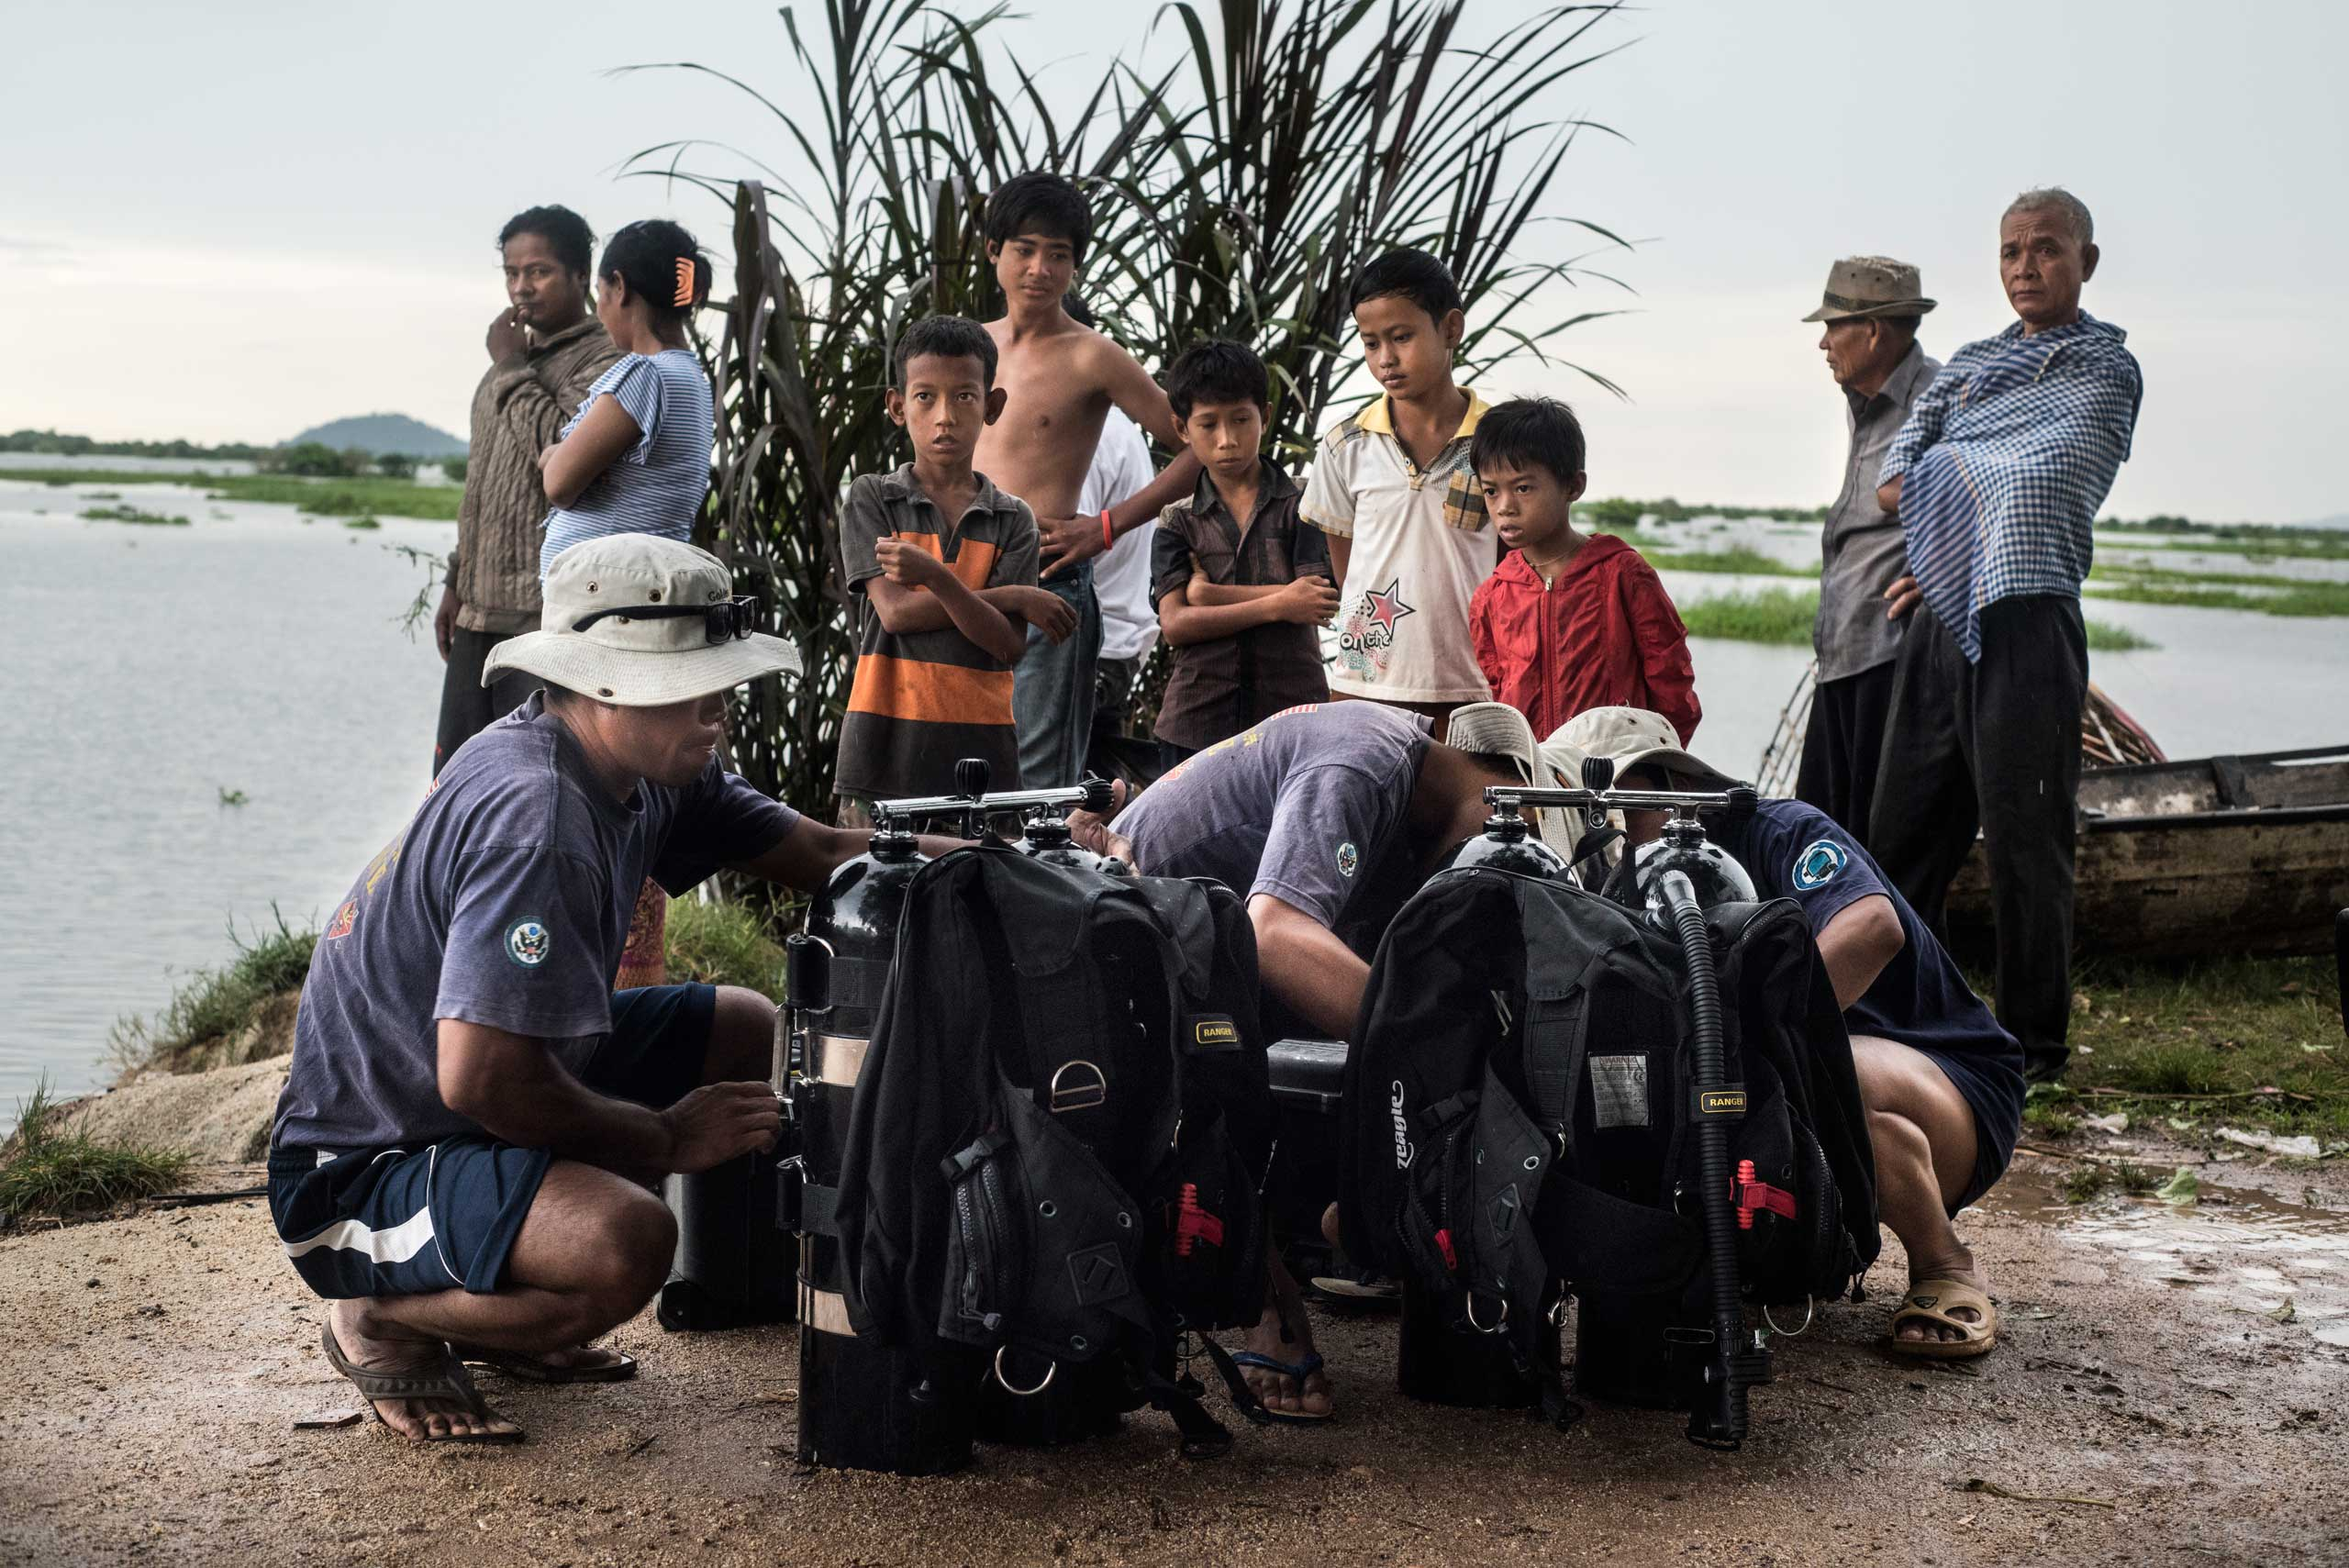 Members of the UXO salvage dive team prepare dive equipment on the banks of the Tonle Sap river overlooked by local villagers in Dec. 2014.